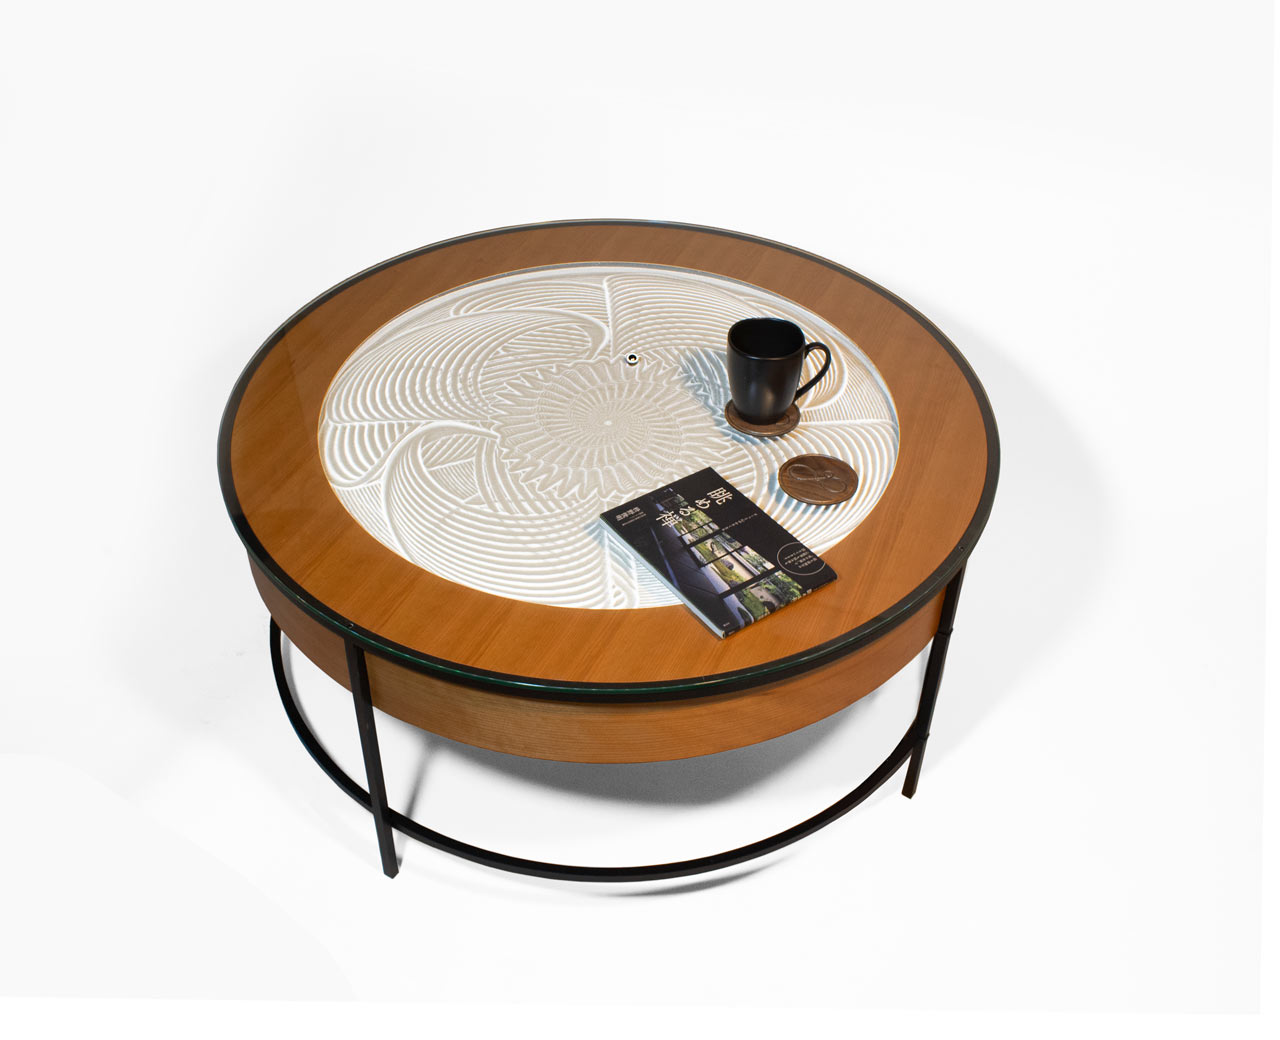 Sisyphus Industries Breaks Down Their Kinetic Art Tables